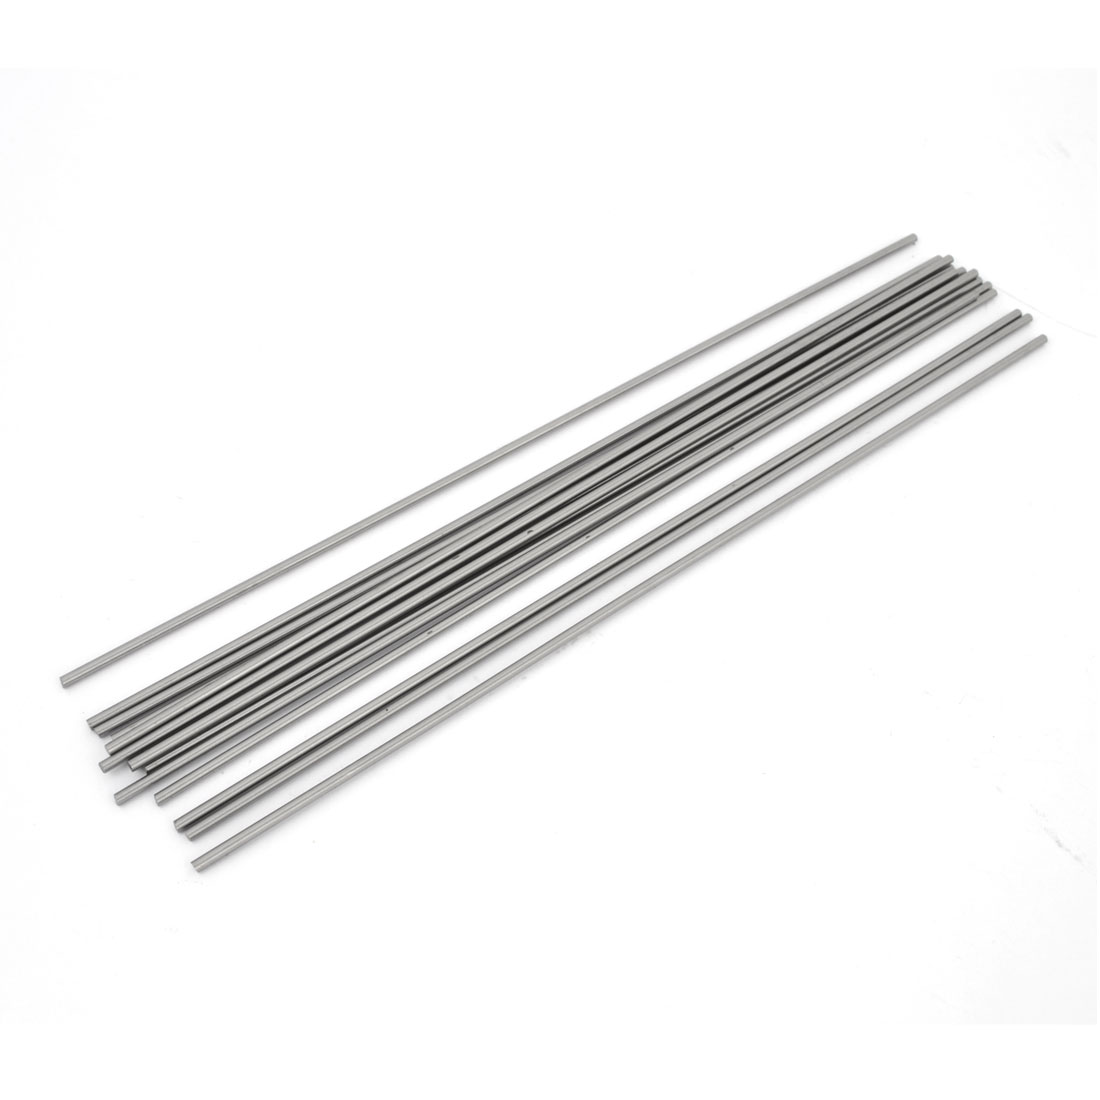 20Pcs 2mmx200mm HSS High Speed Steel Turning Carbide Bars for CNC Lathe